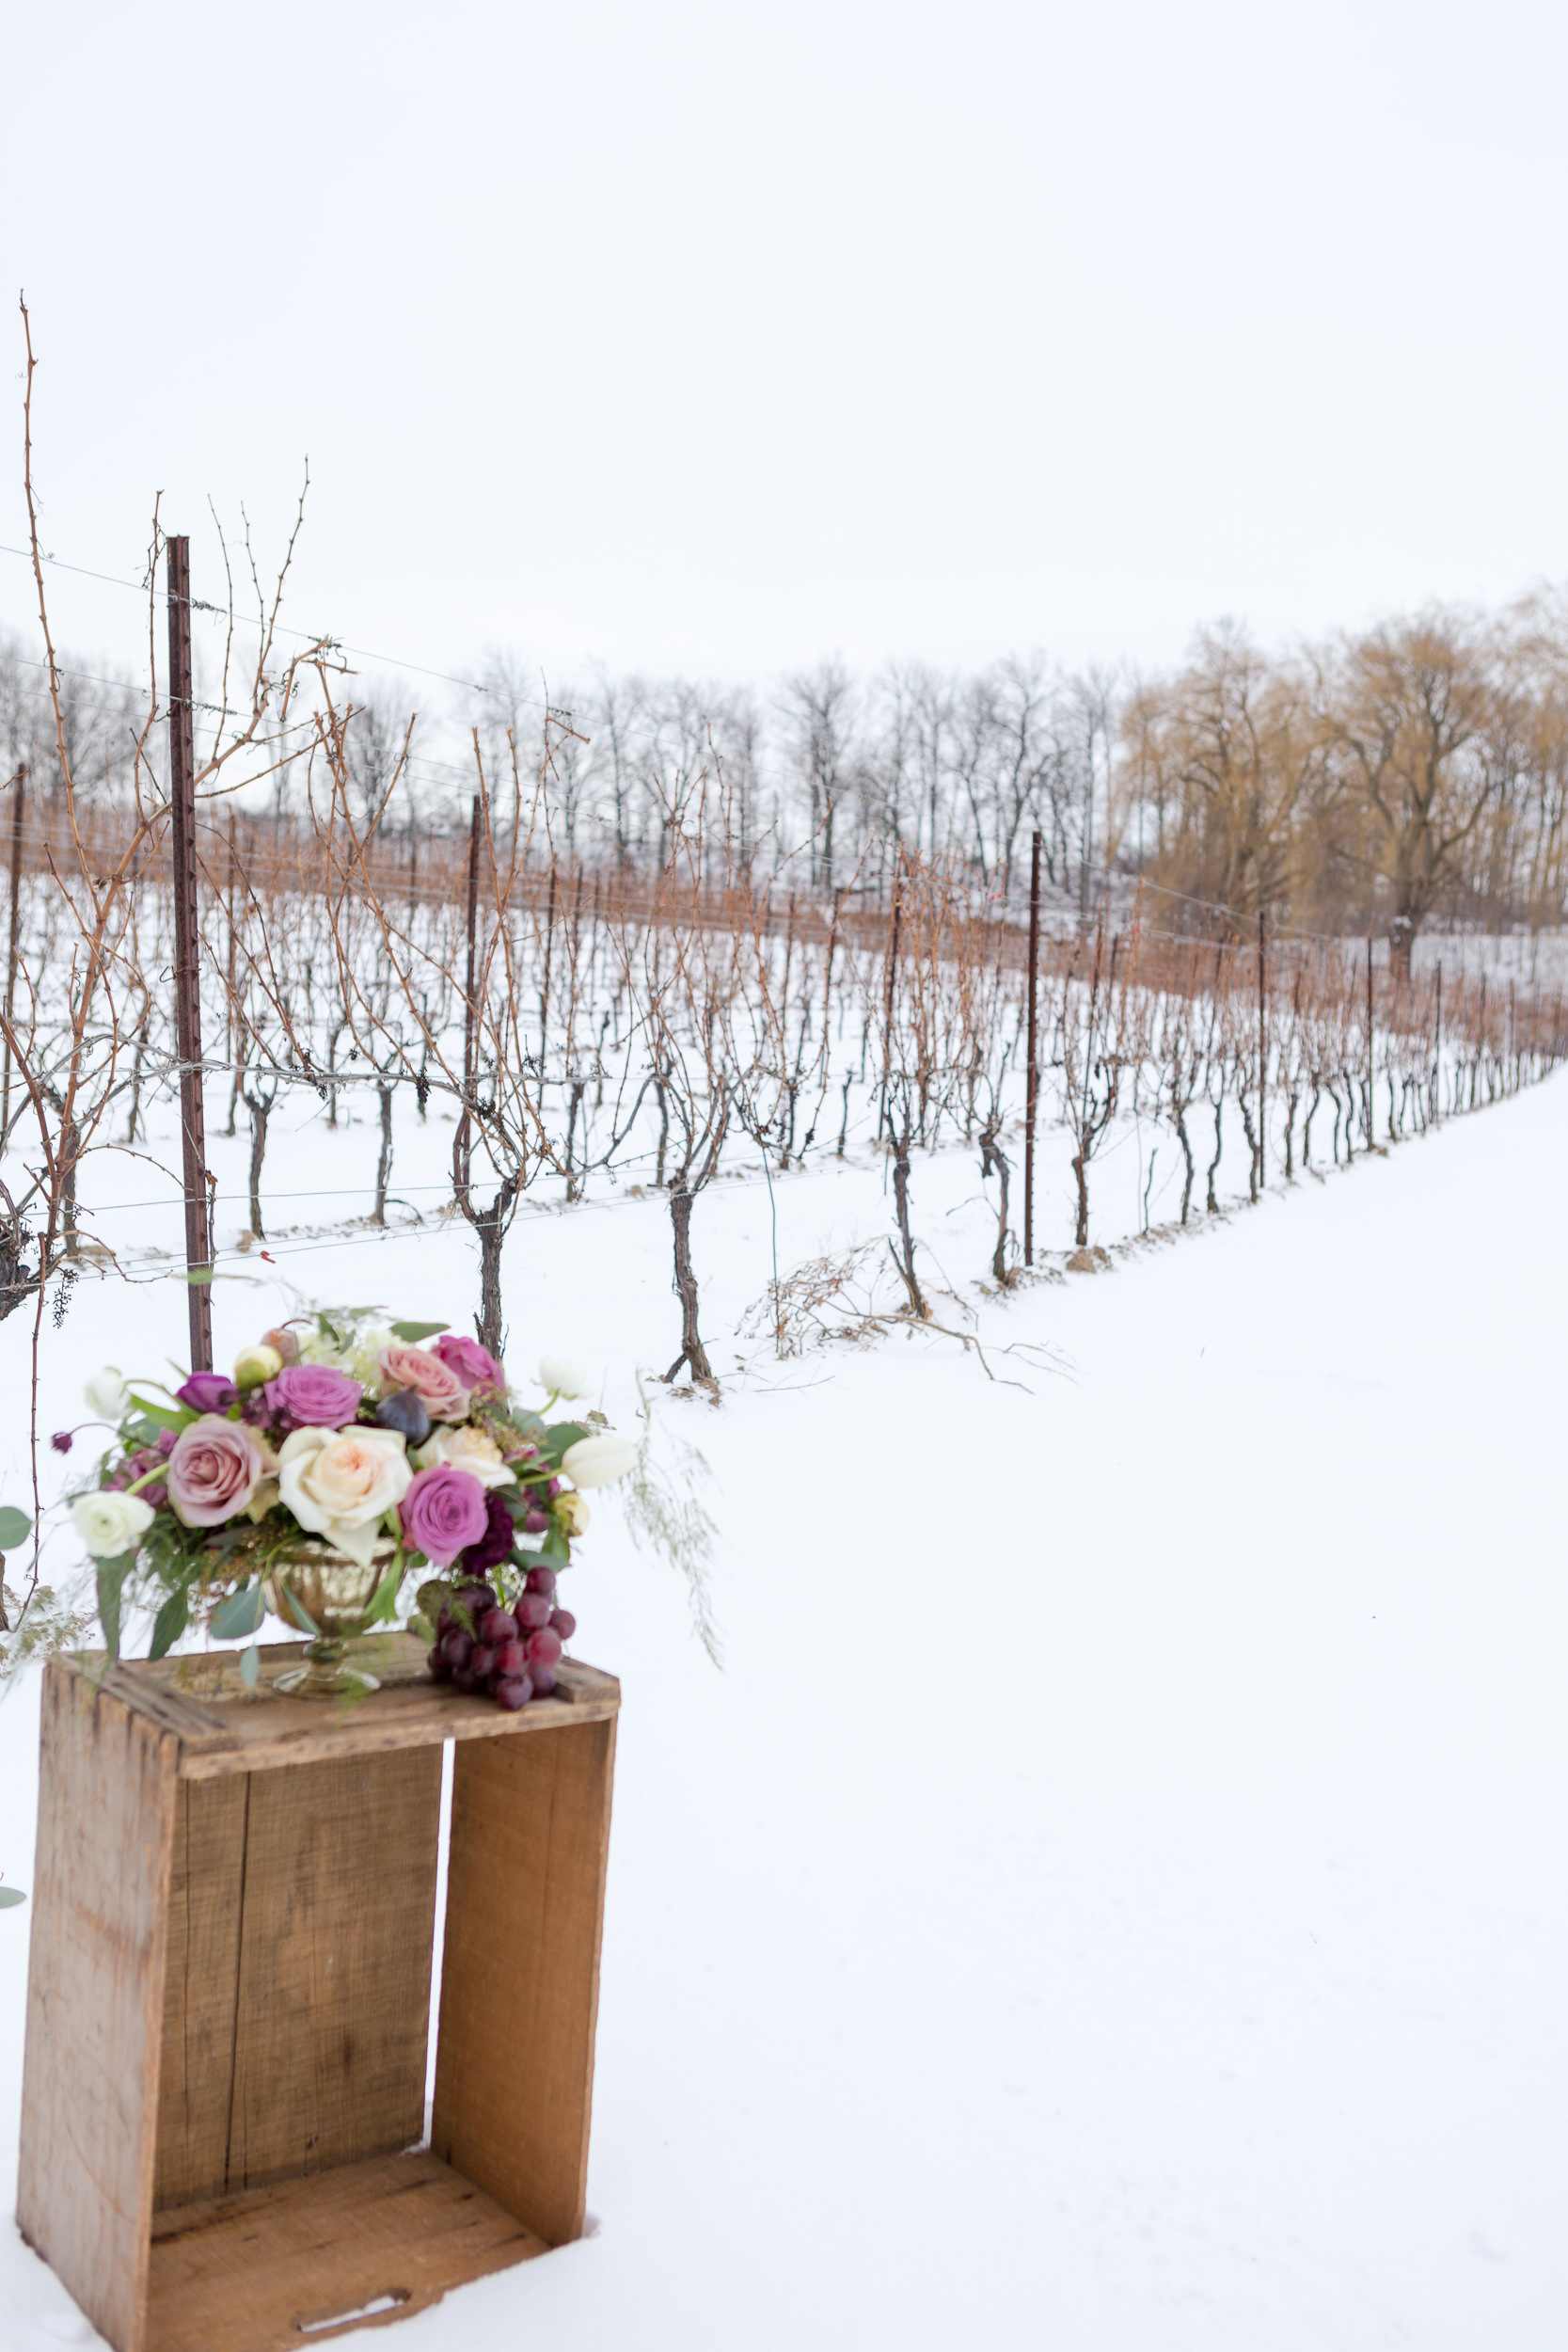 2016 Ice WIne Editorial112.jpg